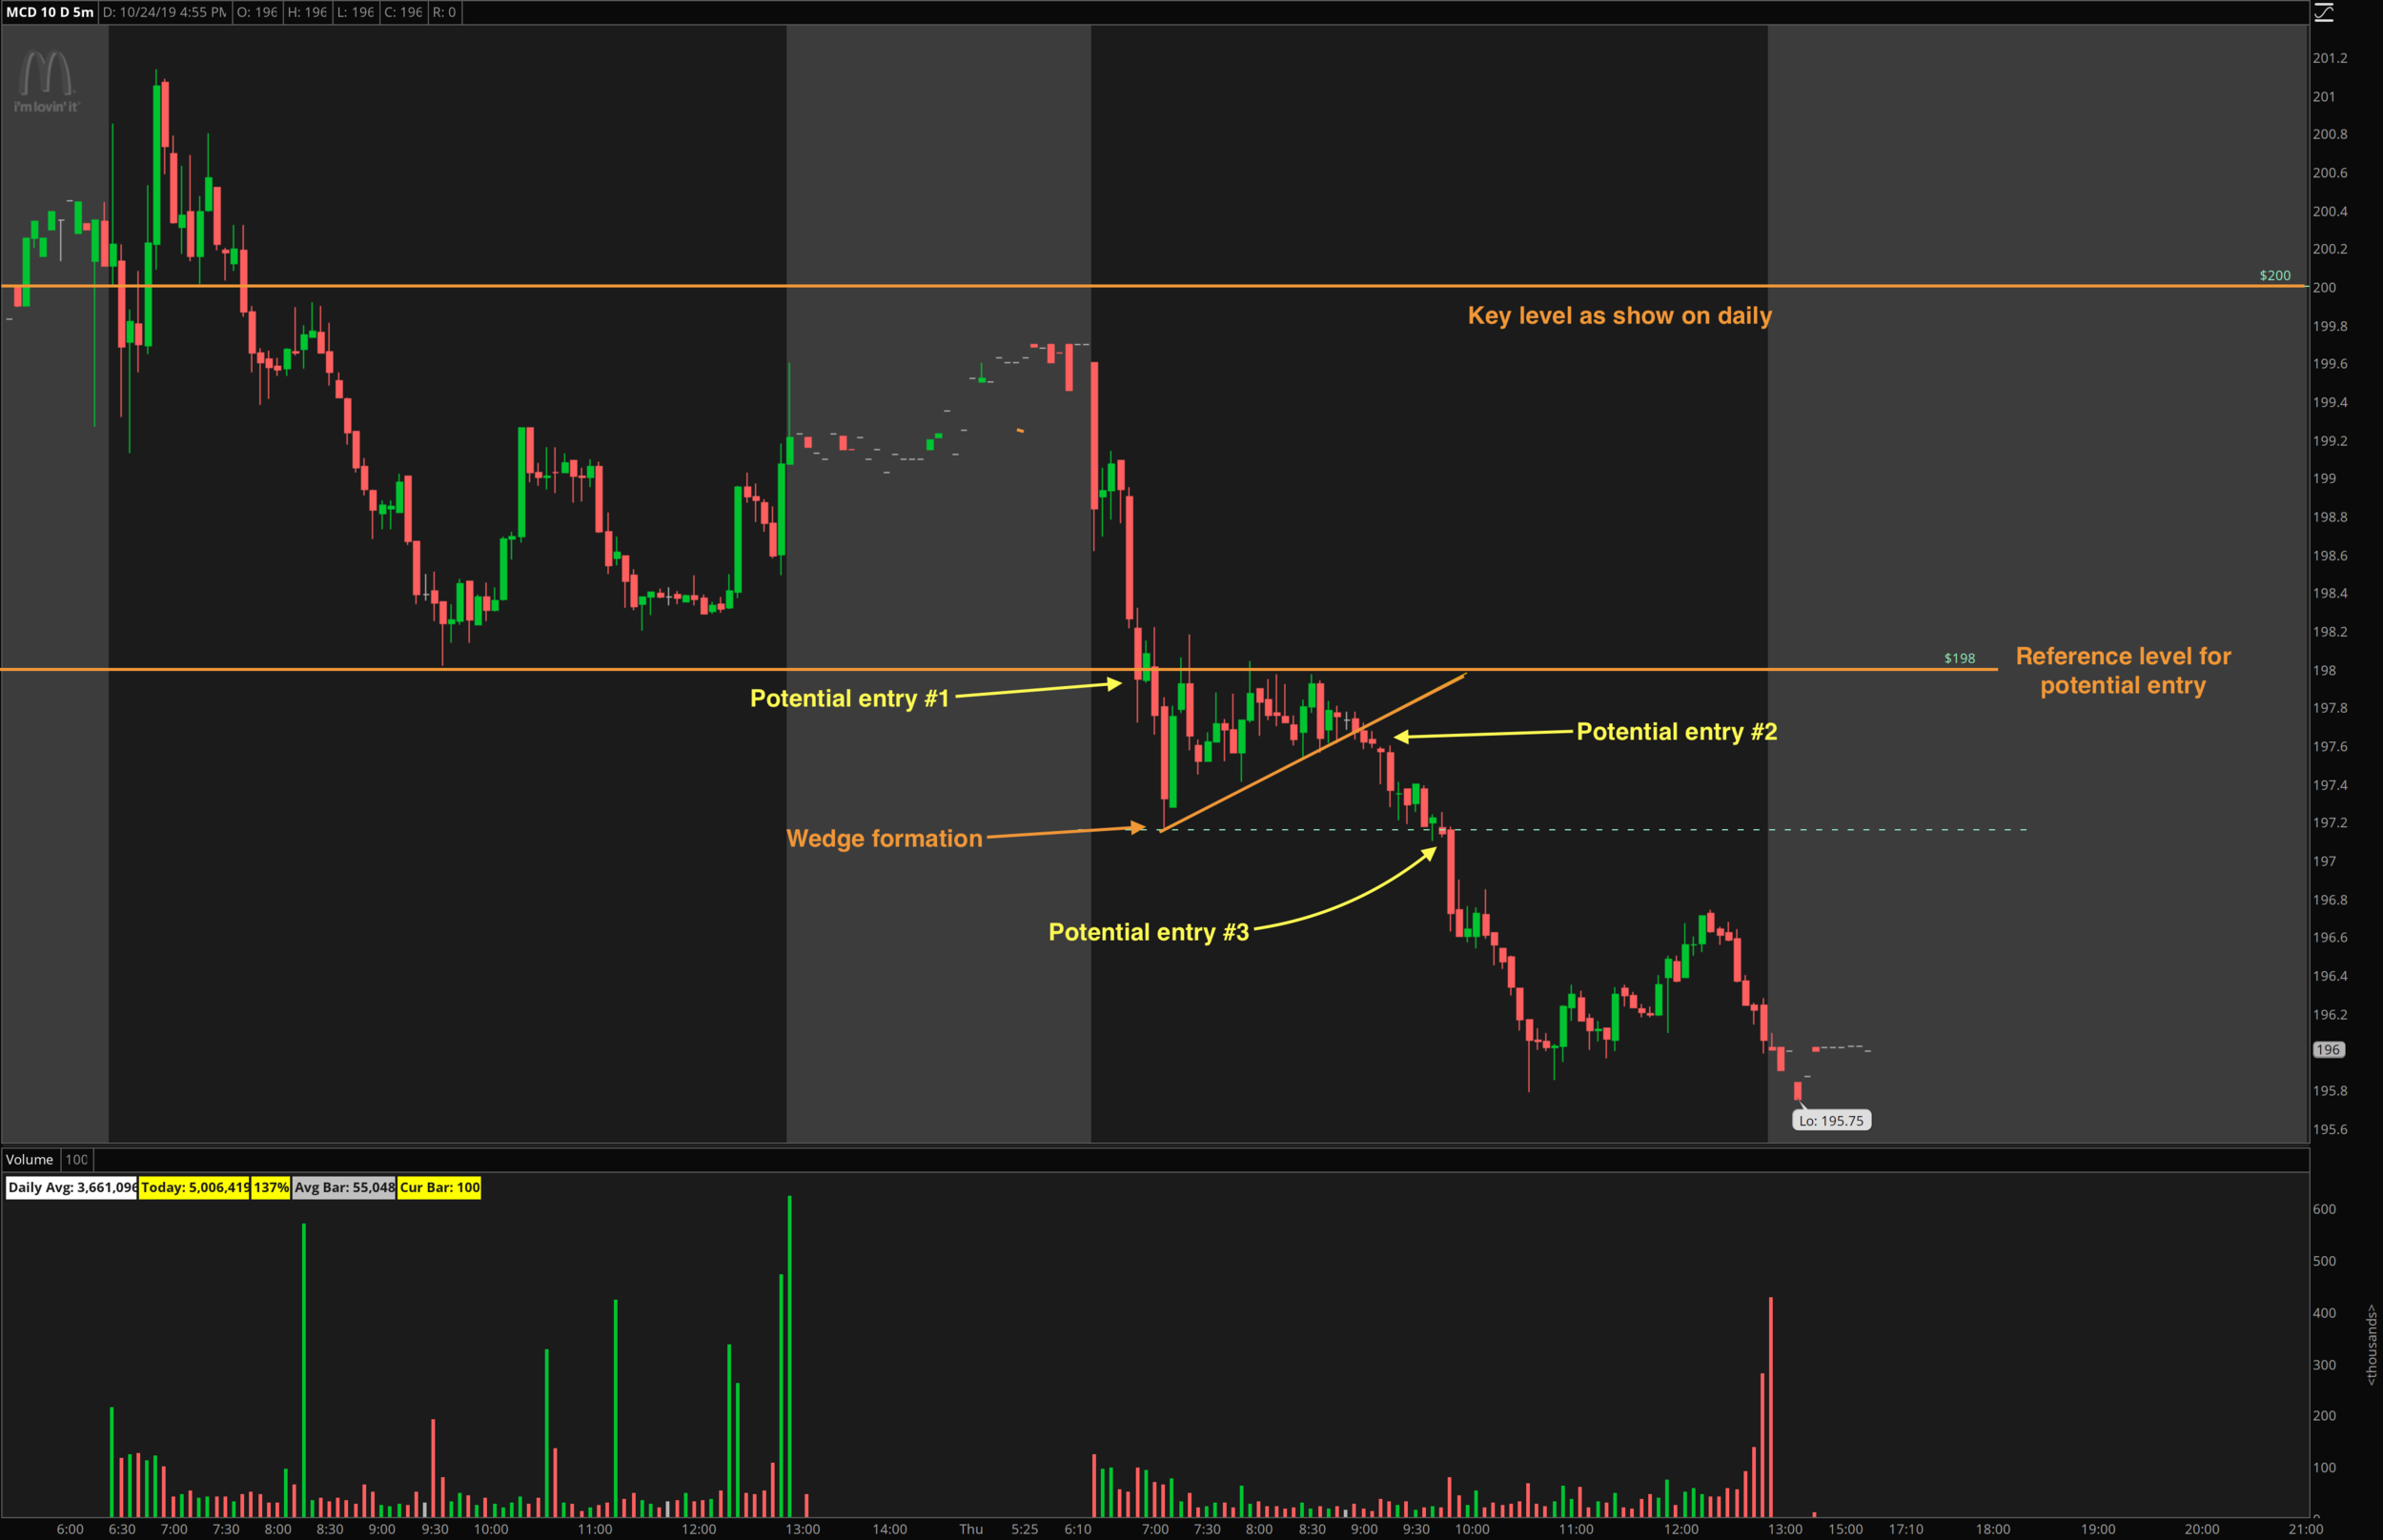 Graphic Three: 5' chart of $MCD highlighting 3 different entry points to short the stock with puts.